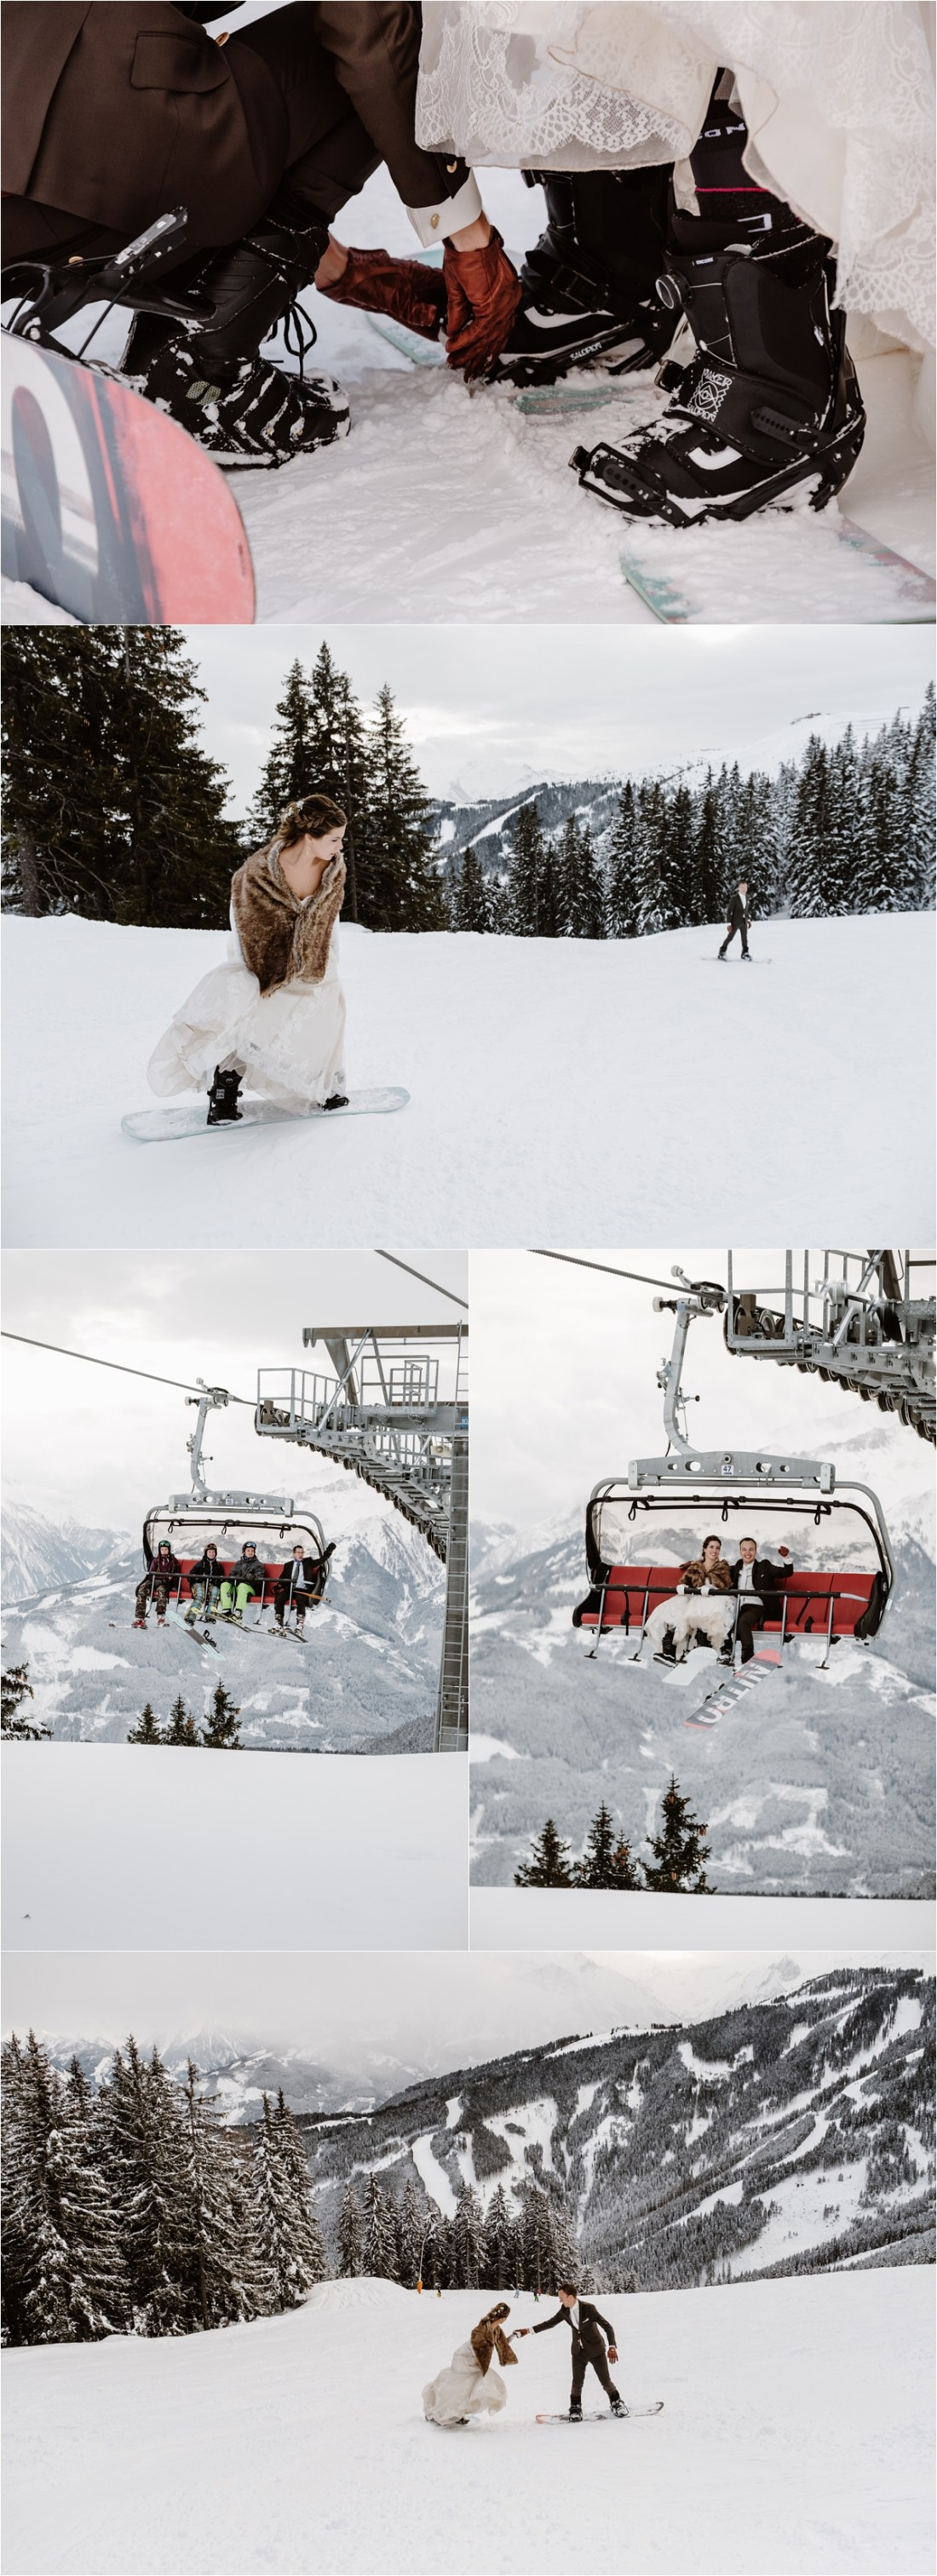 The bride and groom go snowboarding after their mountain wedding ceremony by Wild Connections Photography